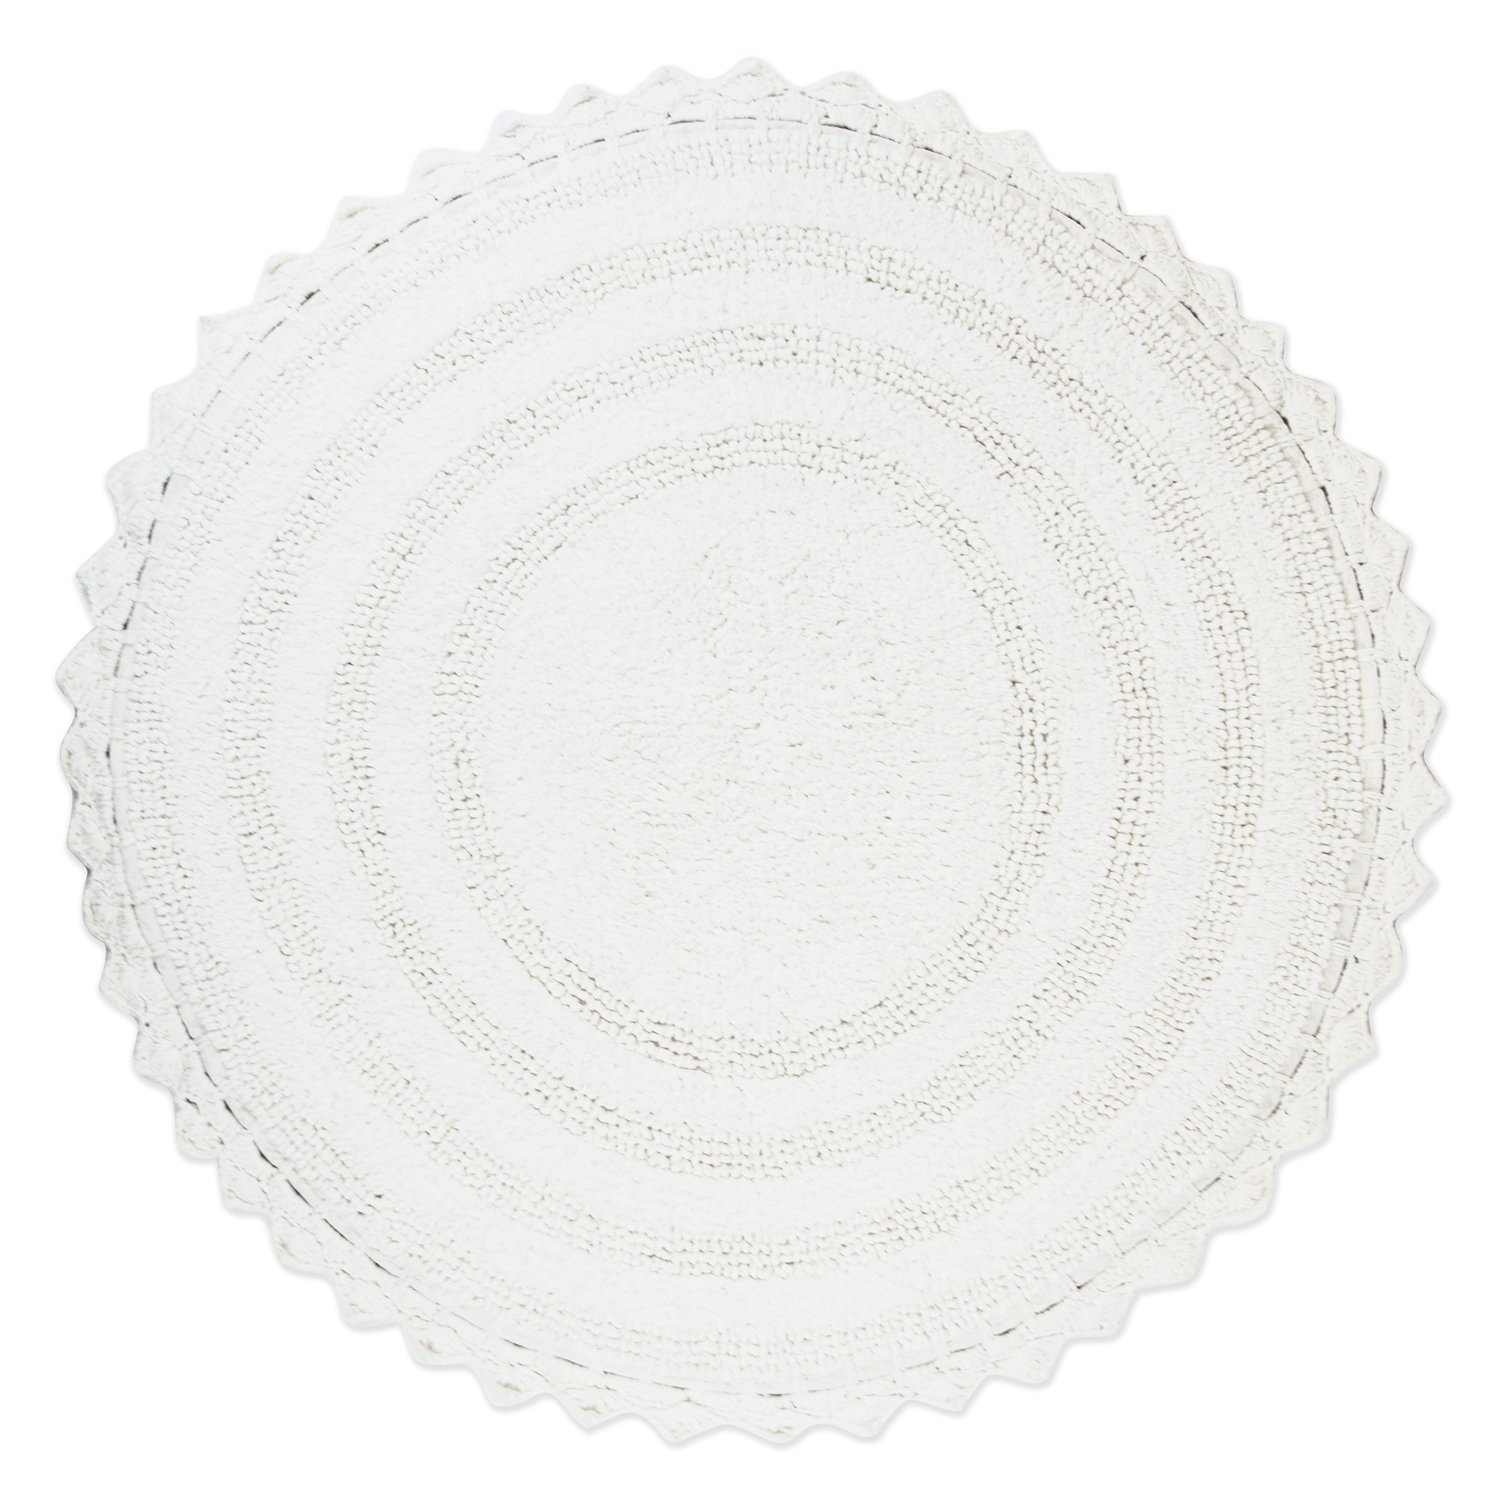 DII Ultra Soft Spa Cotton Crochet Round Bath Mat or Rug Place in Front of Shower, Vanity, Bath Tub, Sink, and Toilet, 28'' - White